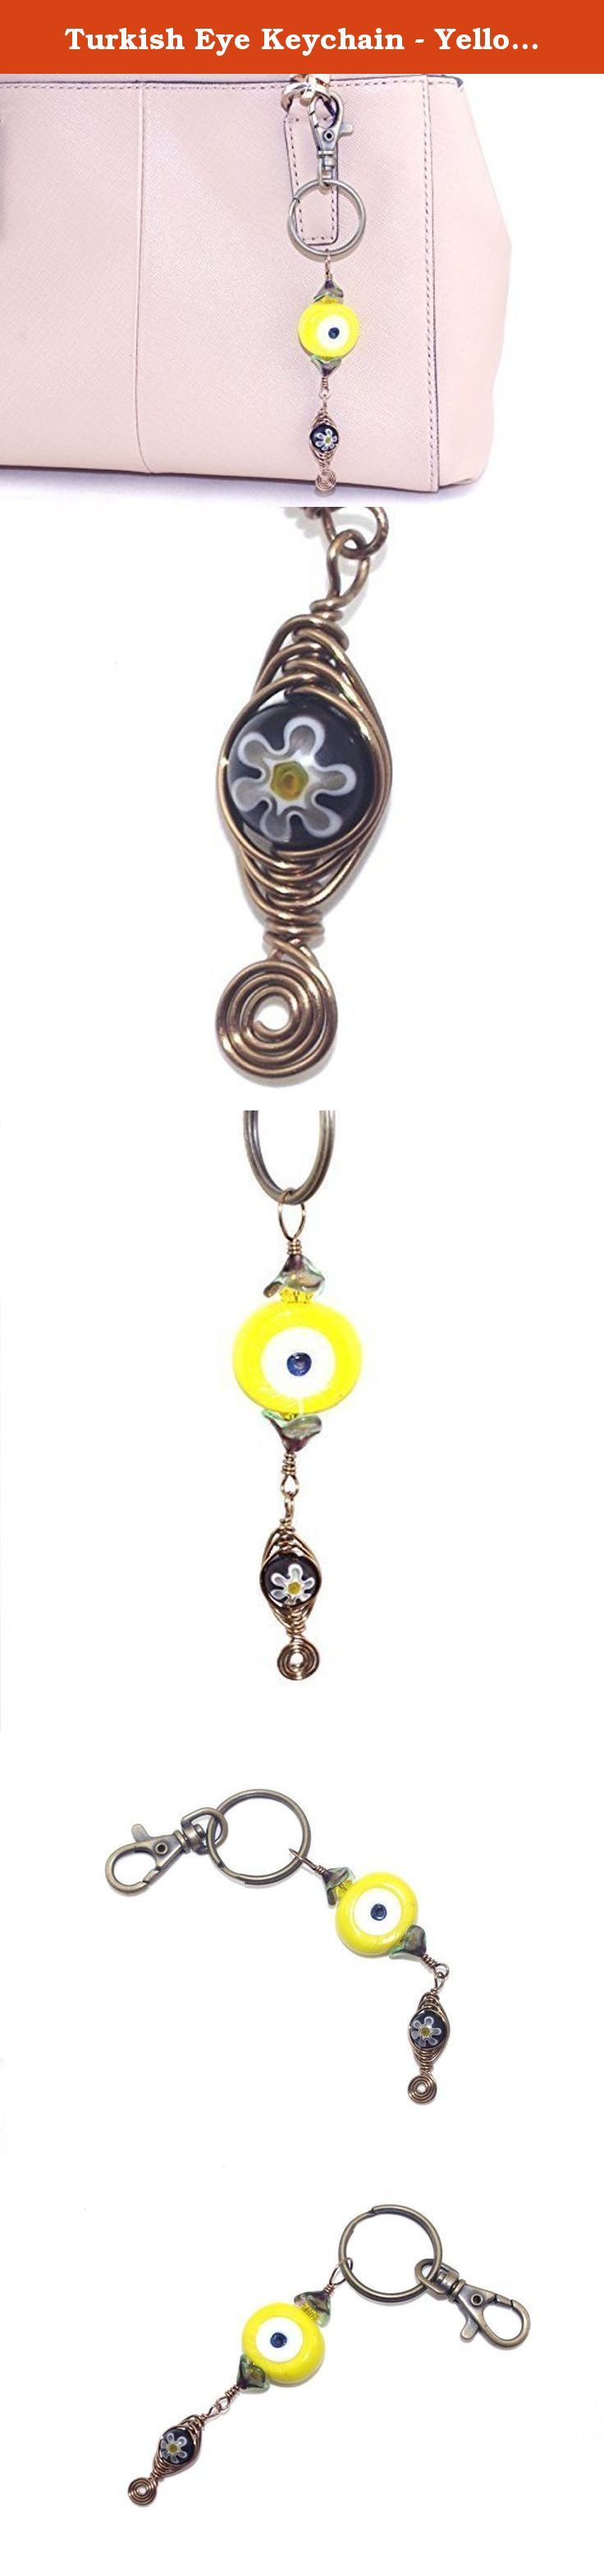 Turkish Eye Keychain - Yellow Brass Millefiori Bead Purse Charm - Zipper Pull Charm - Birthday Present for Her. Brighten up your keys by attaching them to this Turkish eye keychain. The evil eye is embellished with yellow crystals capped with Czech glass bell flowers. A wire wrapped black milleriori bead dangle adds a fun touch. This key chain can also be used as a purse or zipper pull charm. The length of this Turkish eye keychain charm is approximately 3.5 inches (8.89 cm). Materials: -...